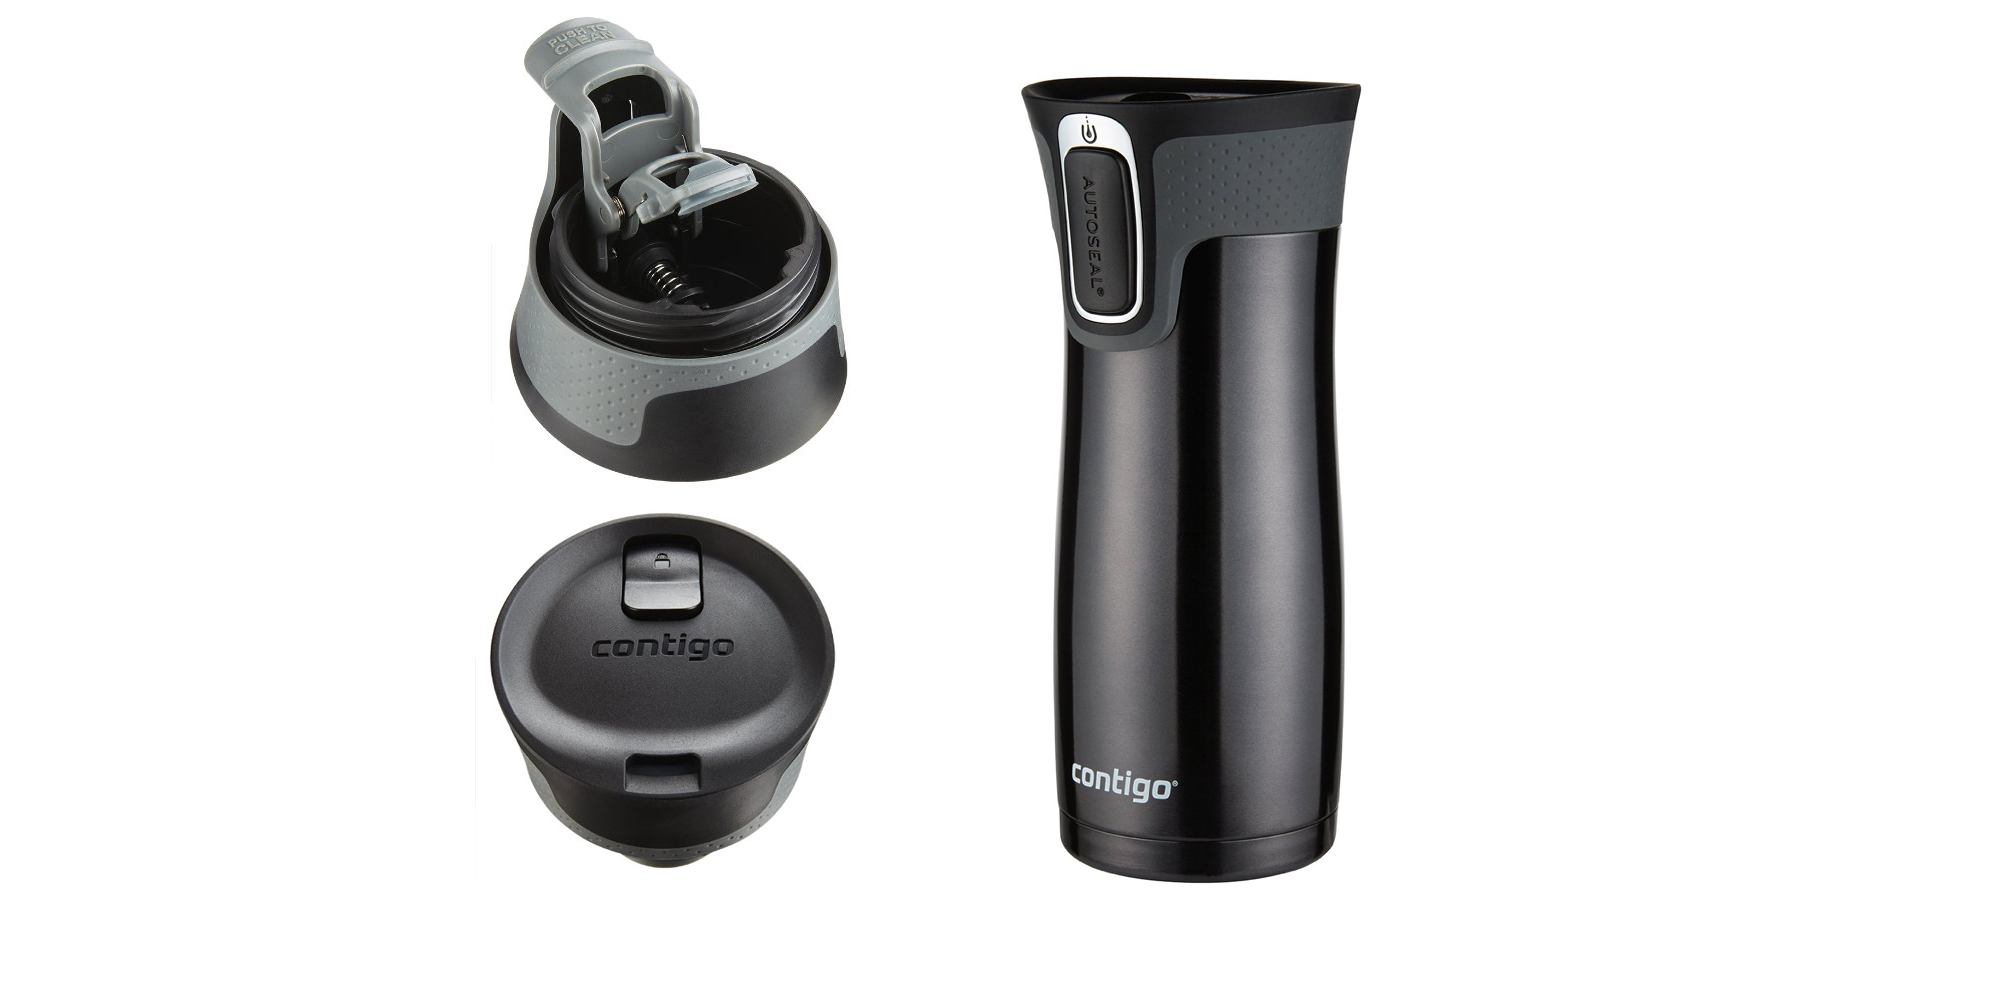 Top Insulated Steel Travel The Mug Stainless Autoseal Rated Contigo N80OZnPkwX